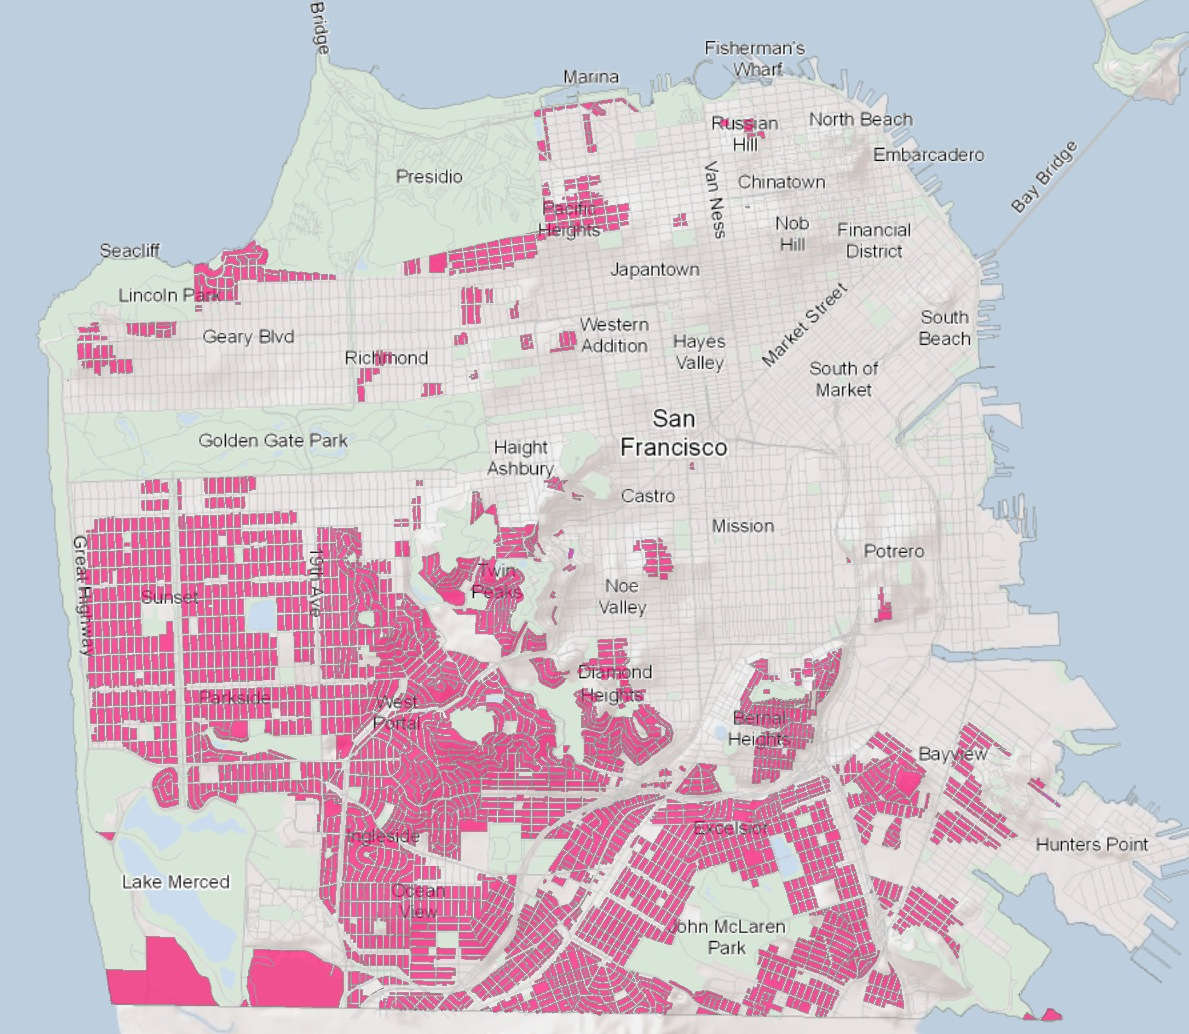 Single-family home zoning in San Francisco